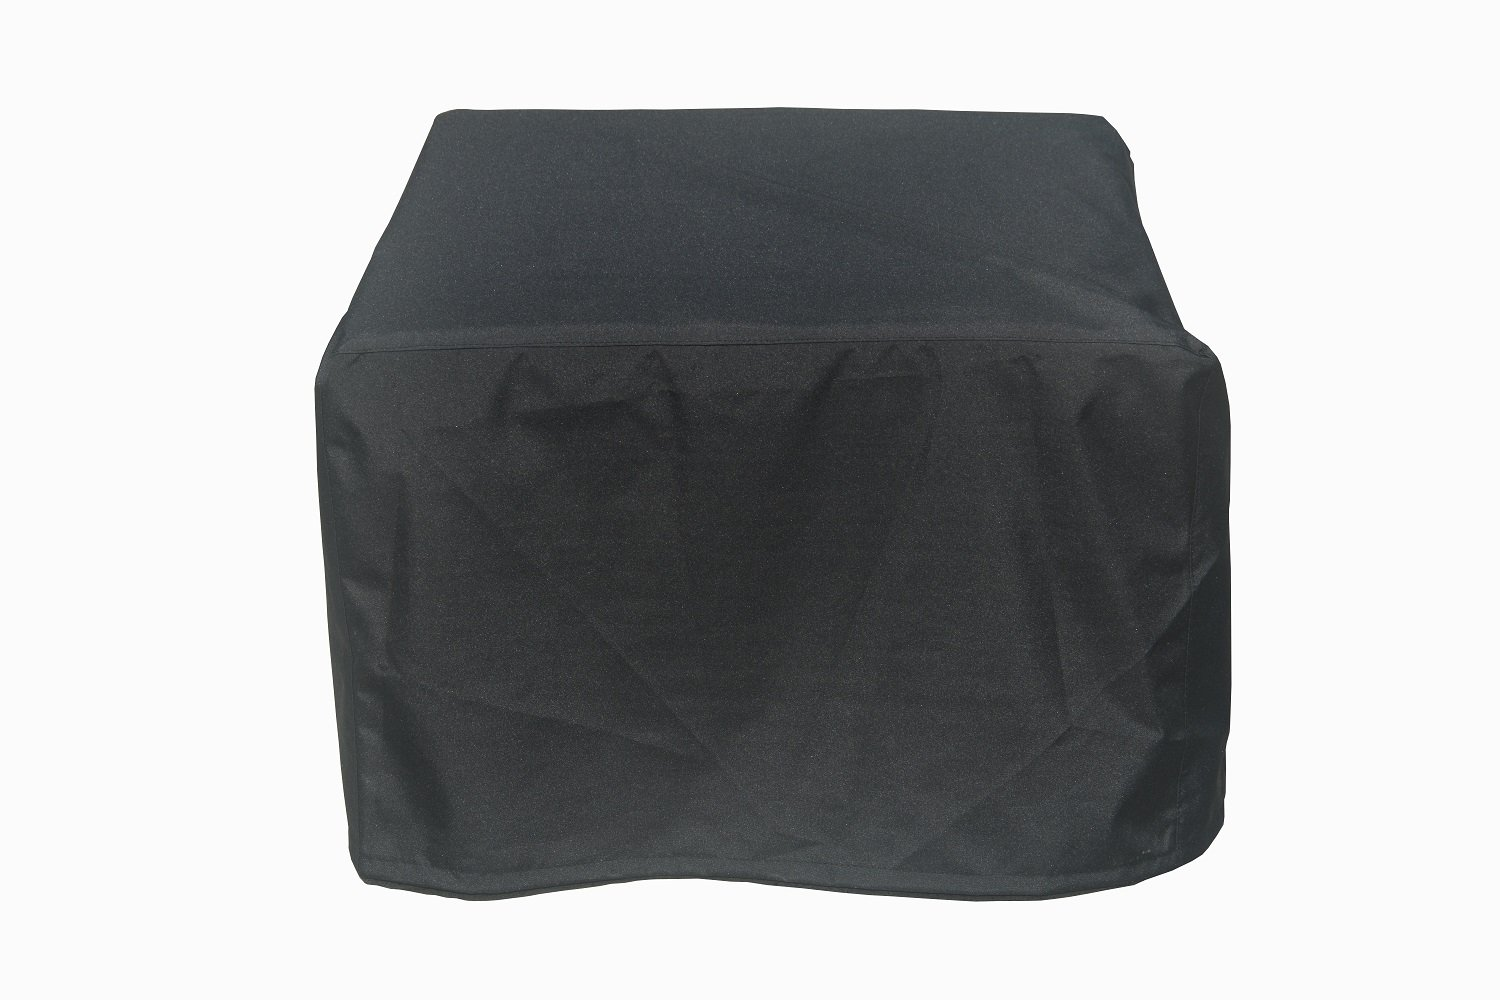 Direct Wicker Patio Ottoman and Side Table Cover - Durable and Water Resistant Outdoor Furniture Cover (Medium-20.8x20.8x16.9inches)